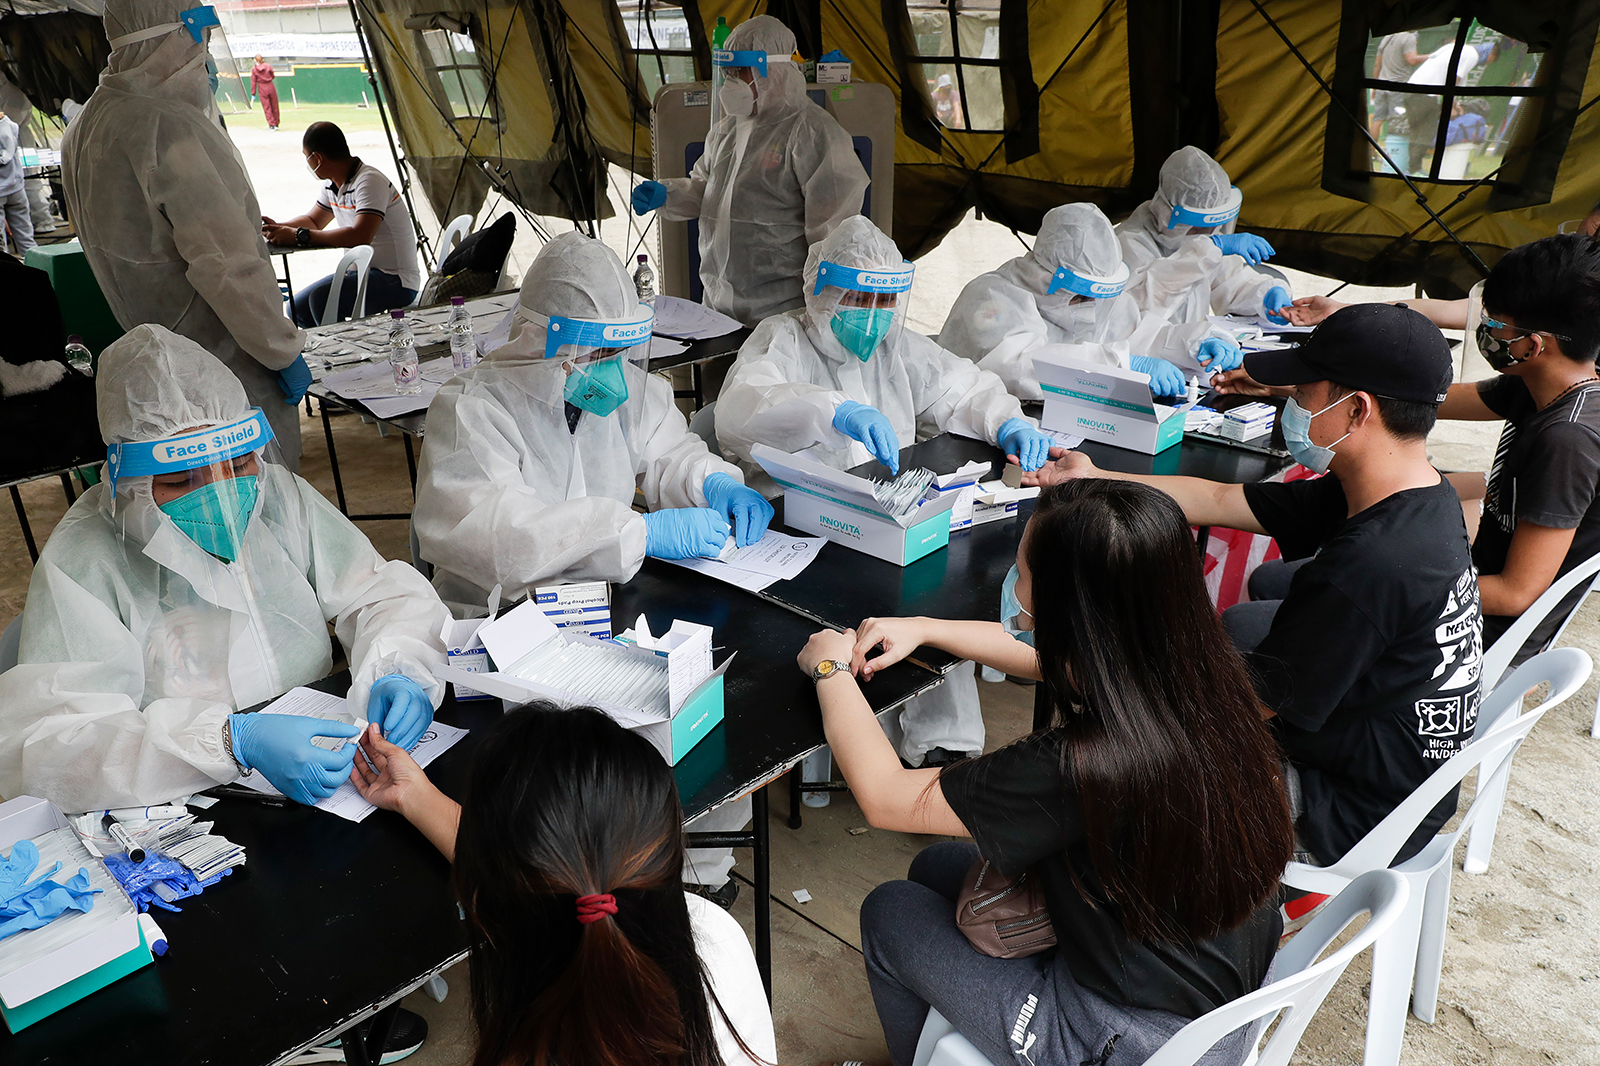 Health workers wearing protective suits perform coronavirus rapid tests on people in Manila, Philippines, on July 28